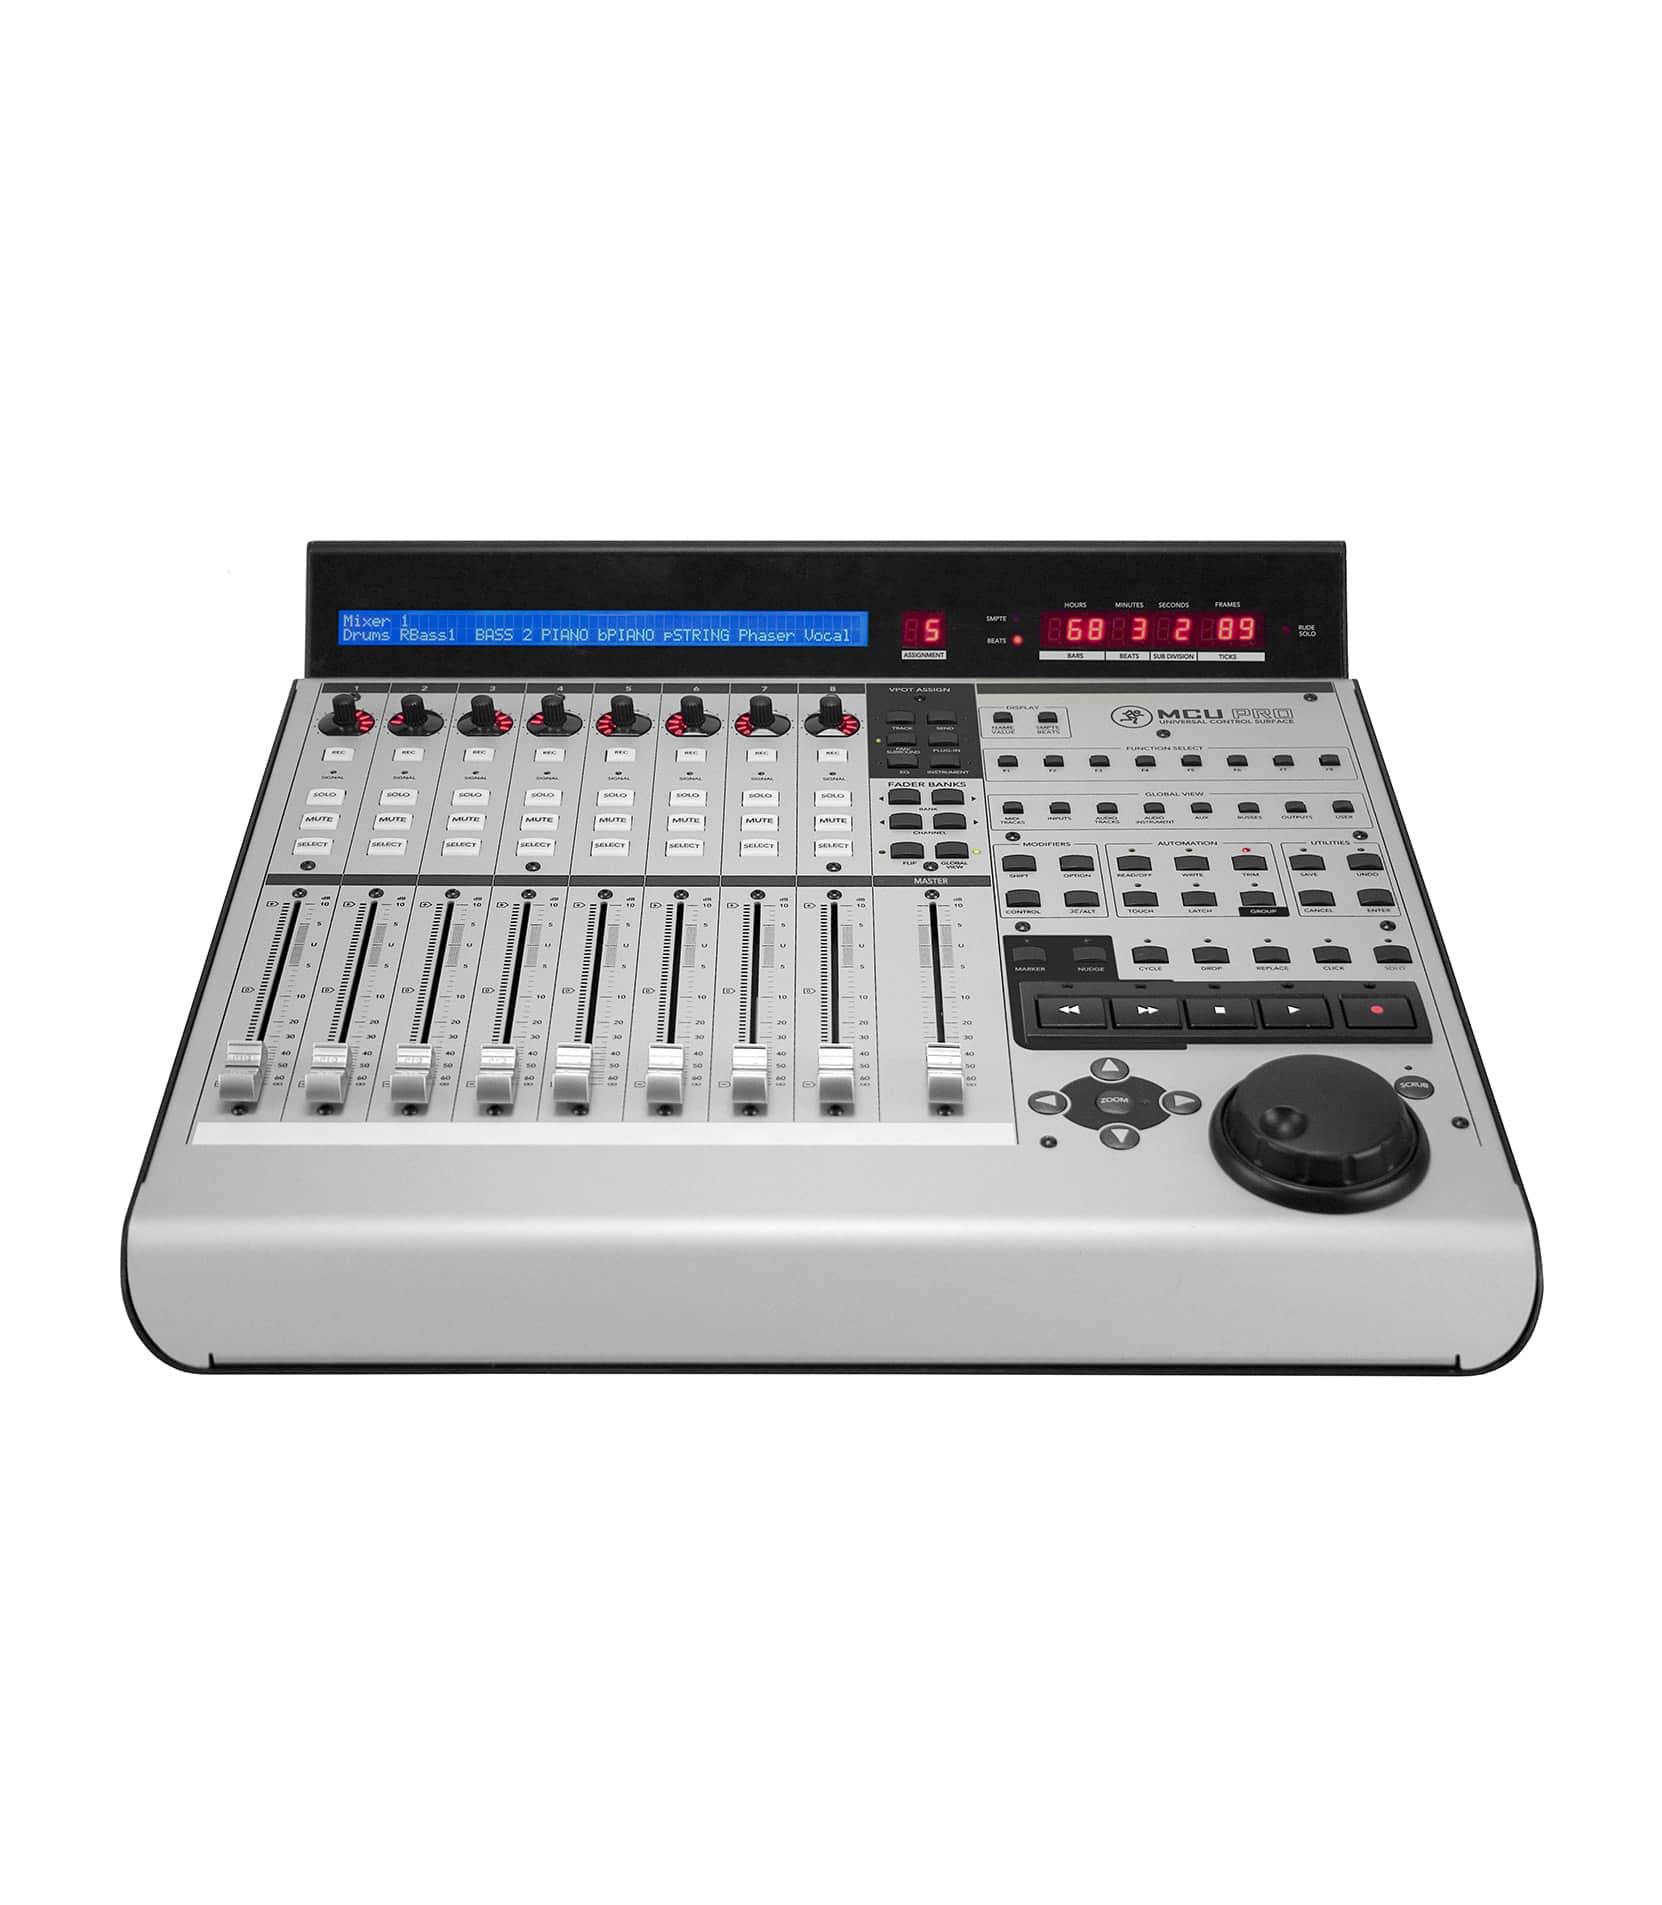 MCU Pro 8 channel Control Surface with USB - Buy Online